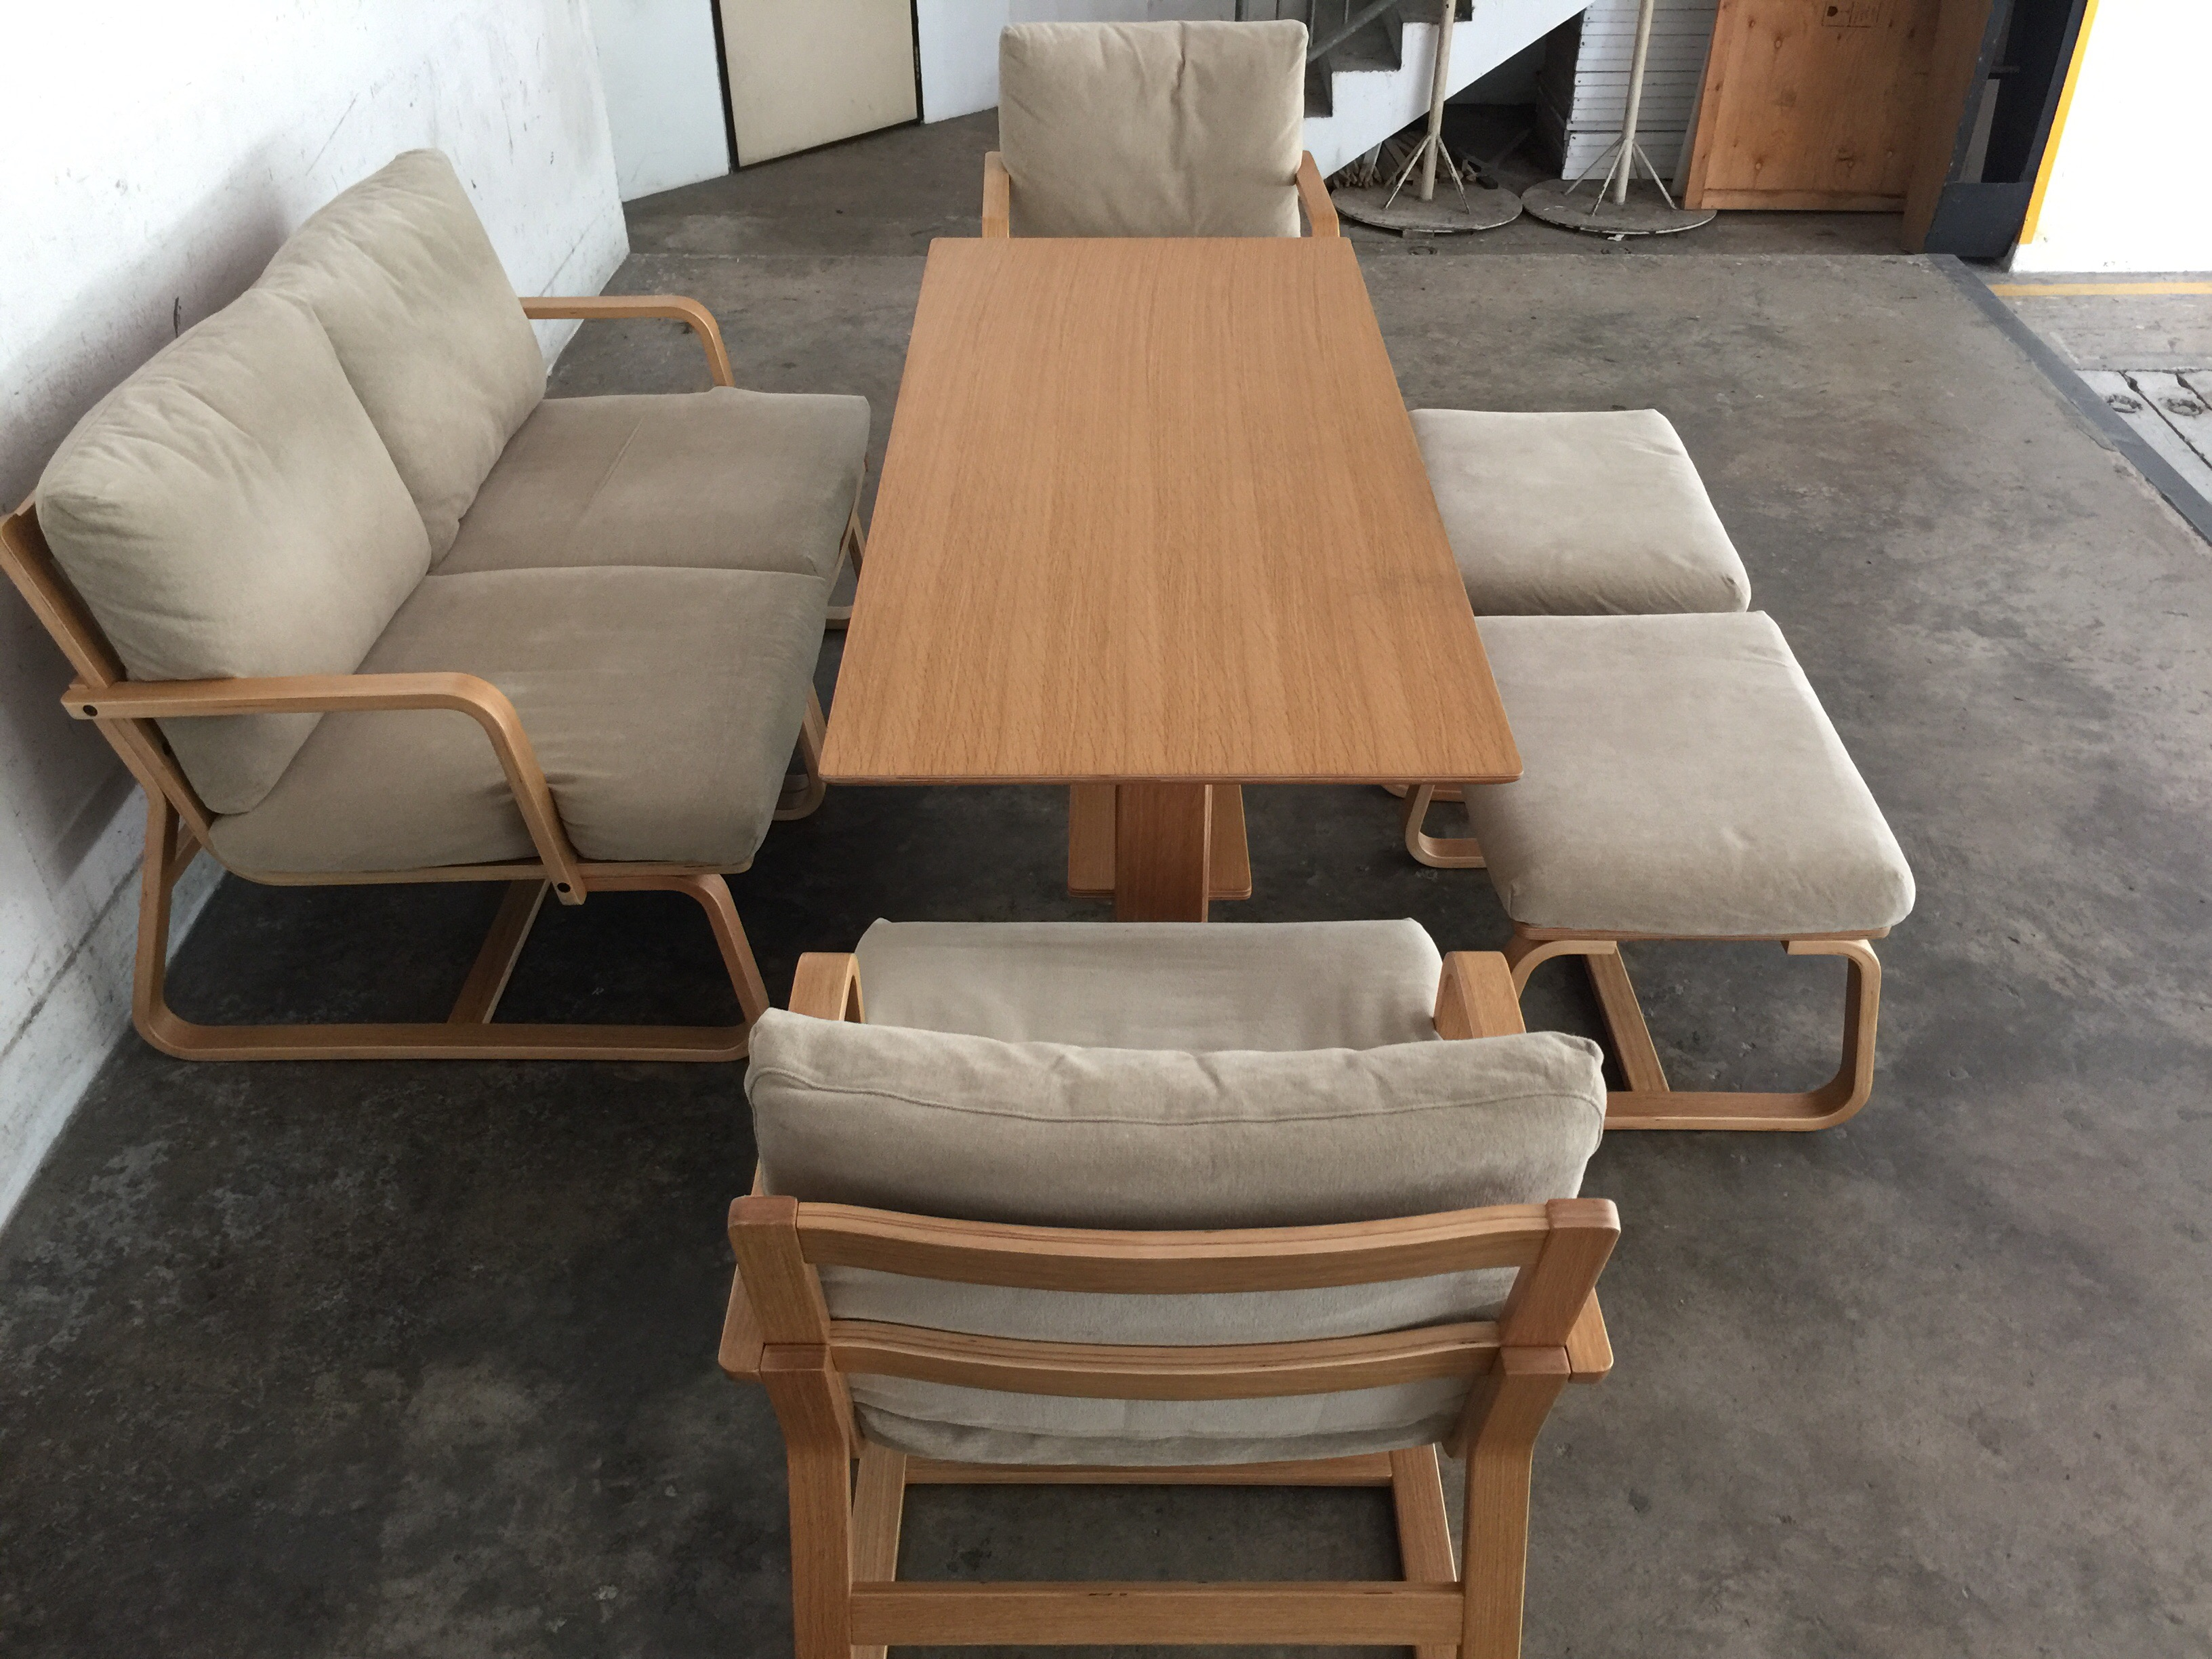 Japanese Style Dining Living Set Henry Furnishing Furniture Rental In Singapore Since 1994